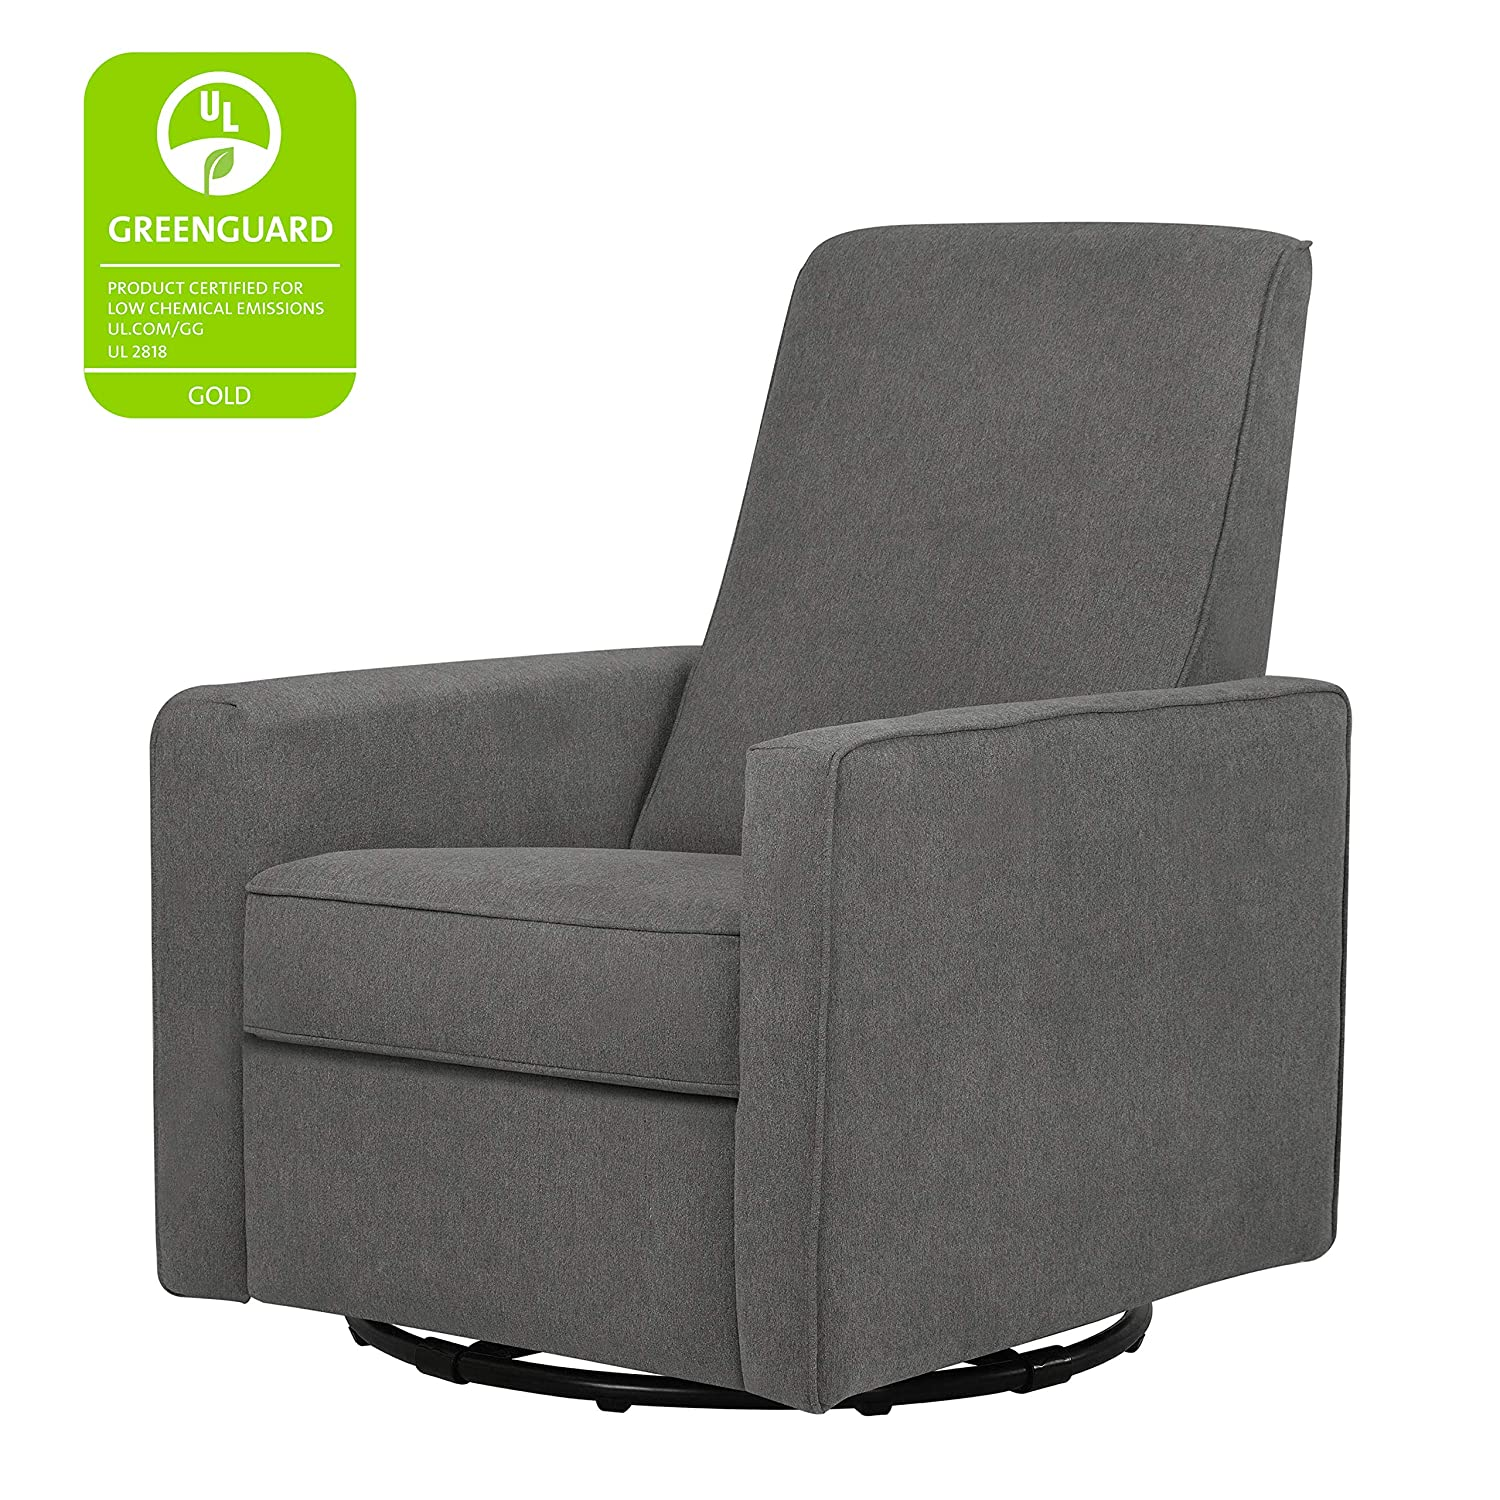 Peachy Davinci Piper Upholstered Recliner And Swivel Glider Dark Grey Pdpeps Interior Chair Design Pdpepsorg